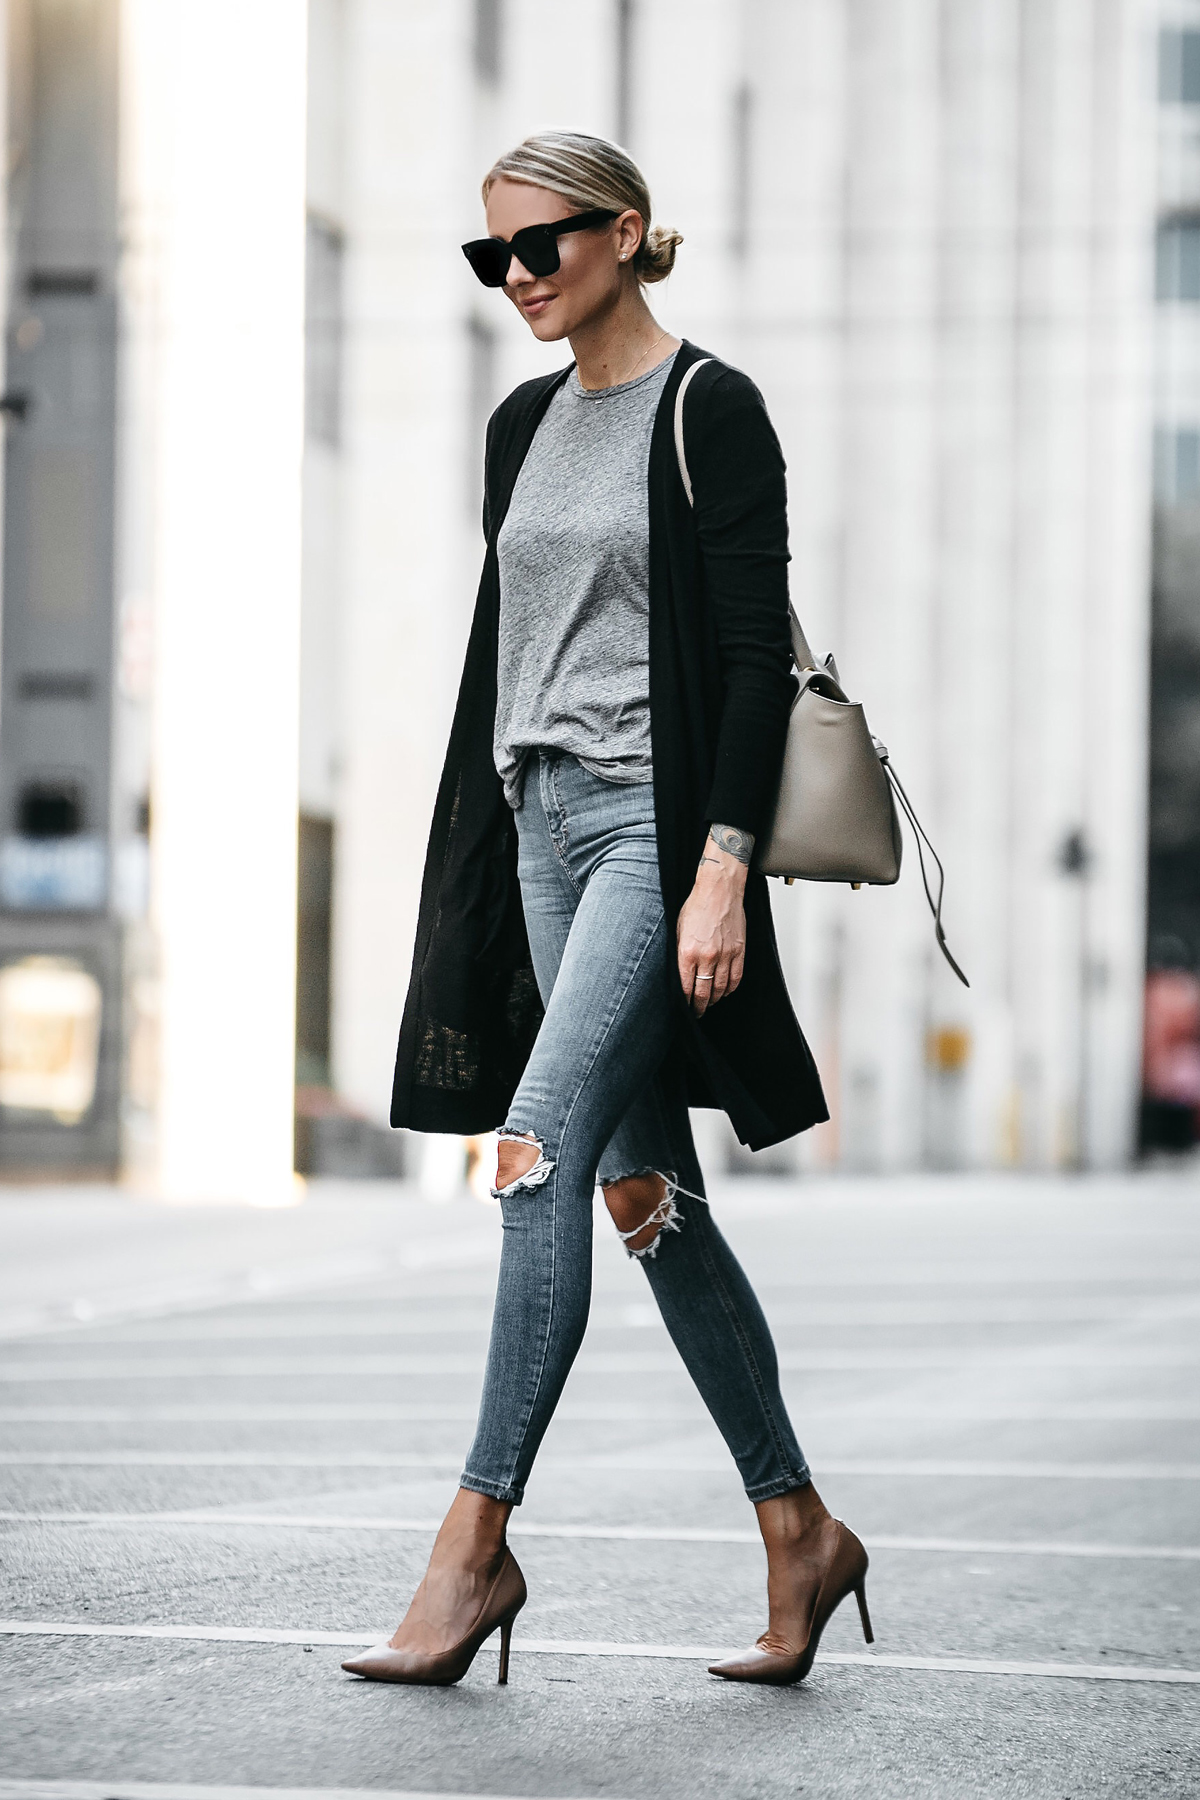 d27415556b Blonde Woman Wearing Long Black Cardigan Grey Tshirt Topshop Ripped Skinny  Jeans Nude Pumps Outfit Celine